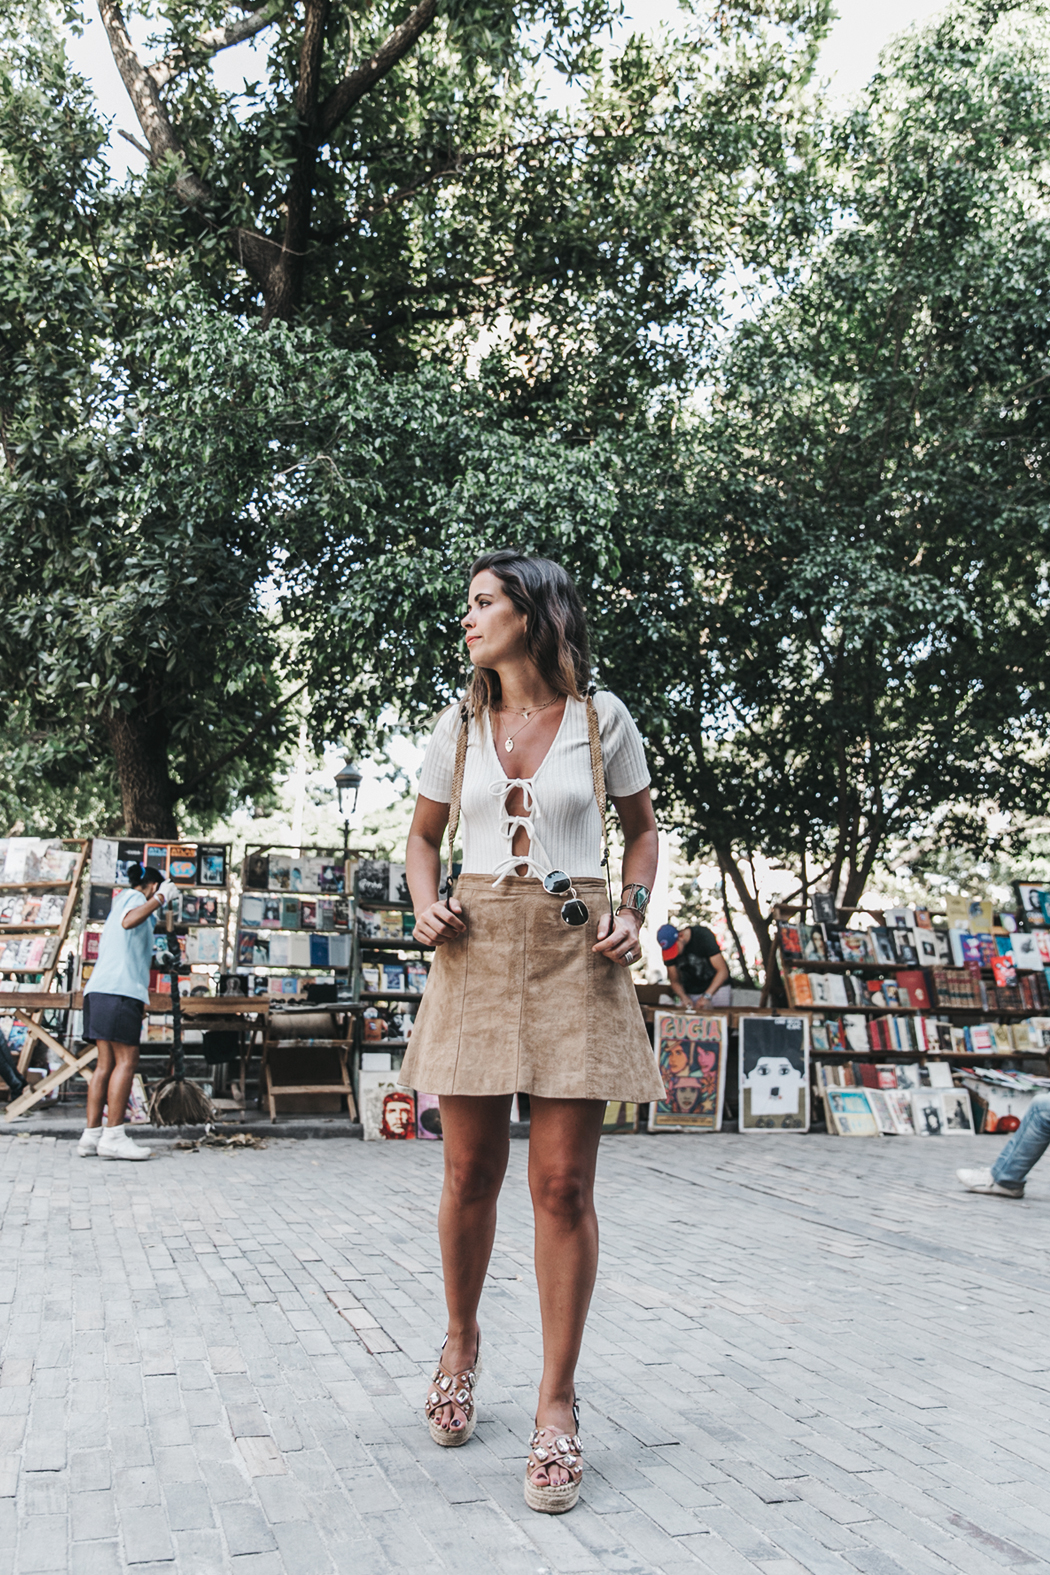 Cuba-Habana_Vieja-Suede_Skirt-Lace_UP_Body-Privacy_Please-Wedges-Outfit-Collage_Vintage-Travels-Street_Style-Backpack-46